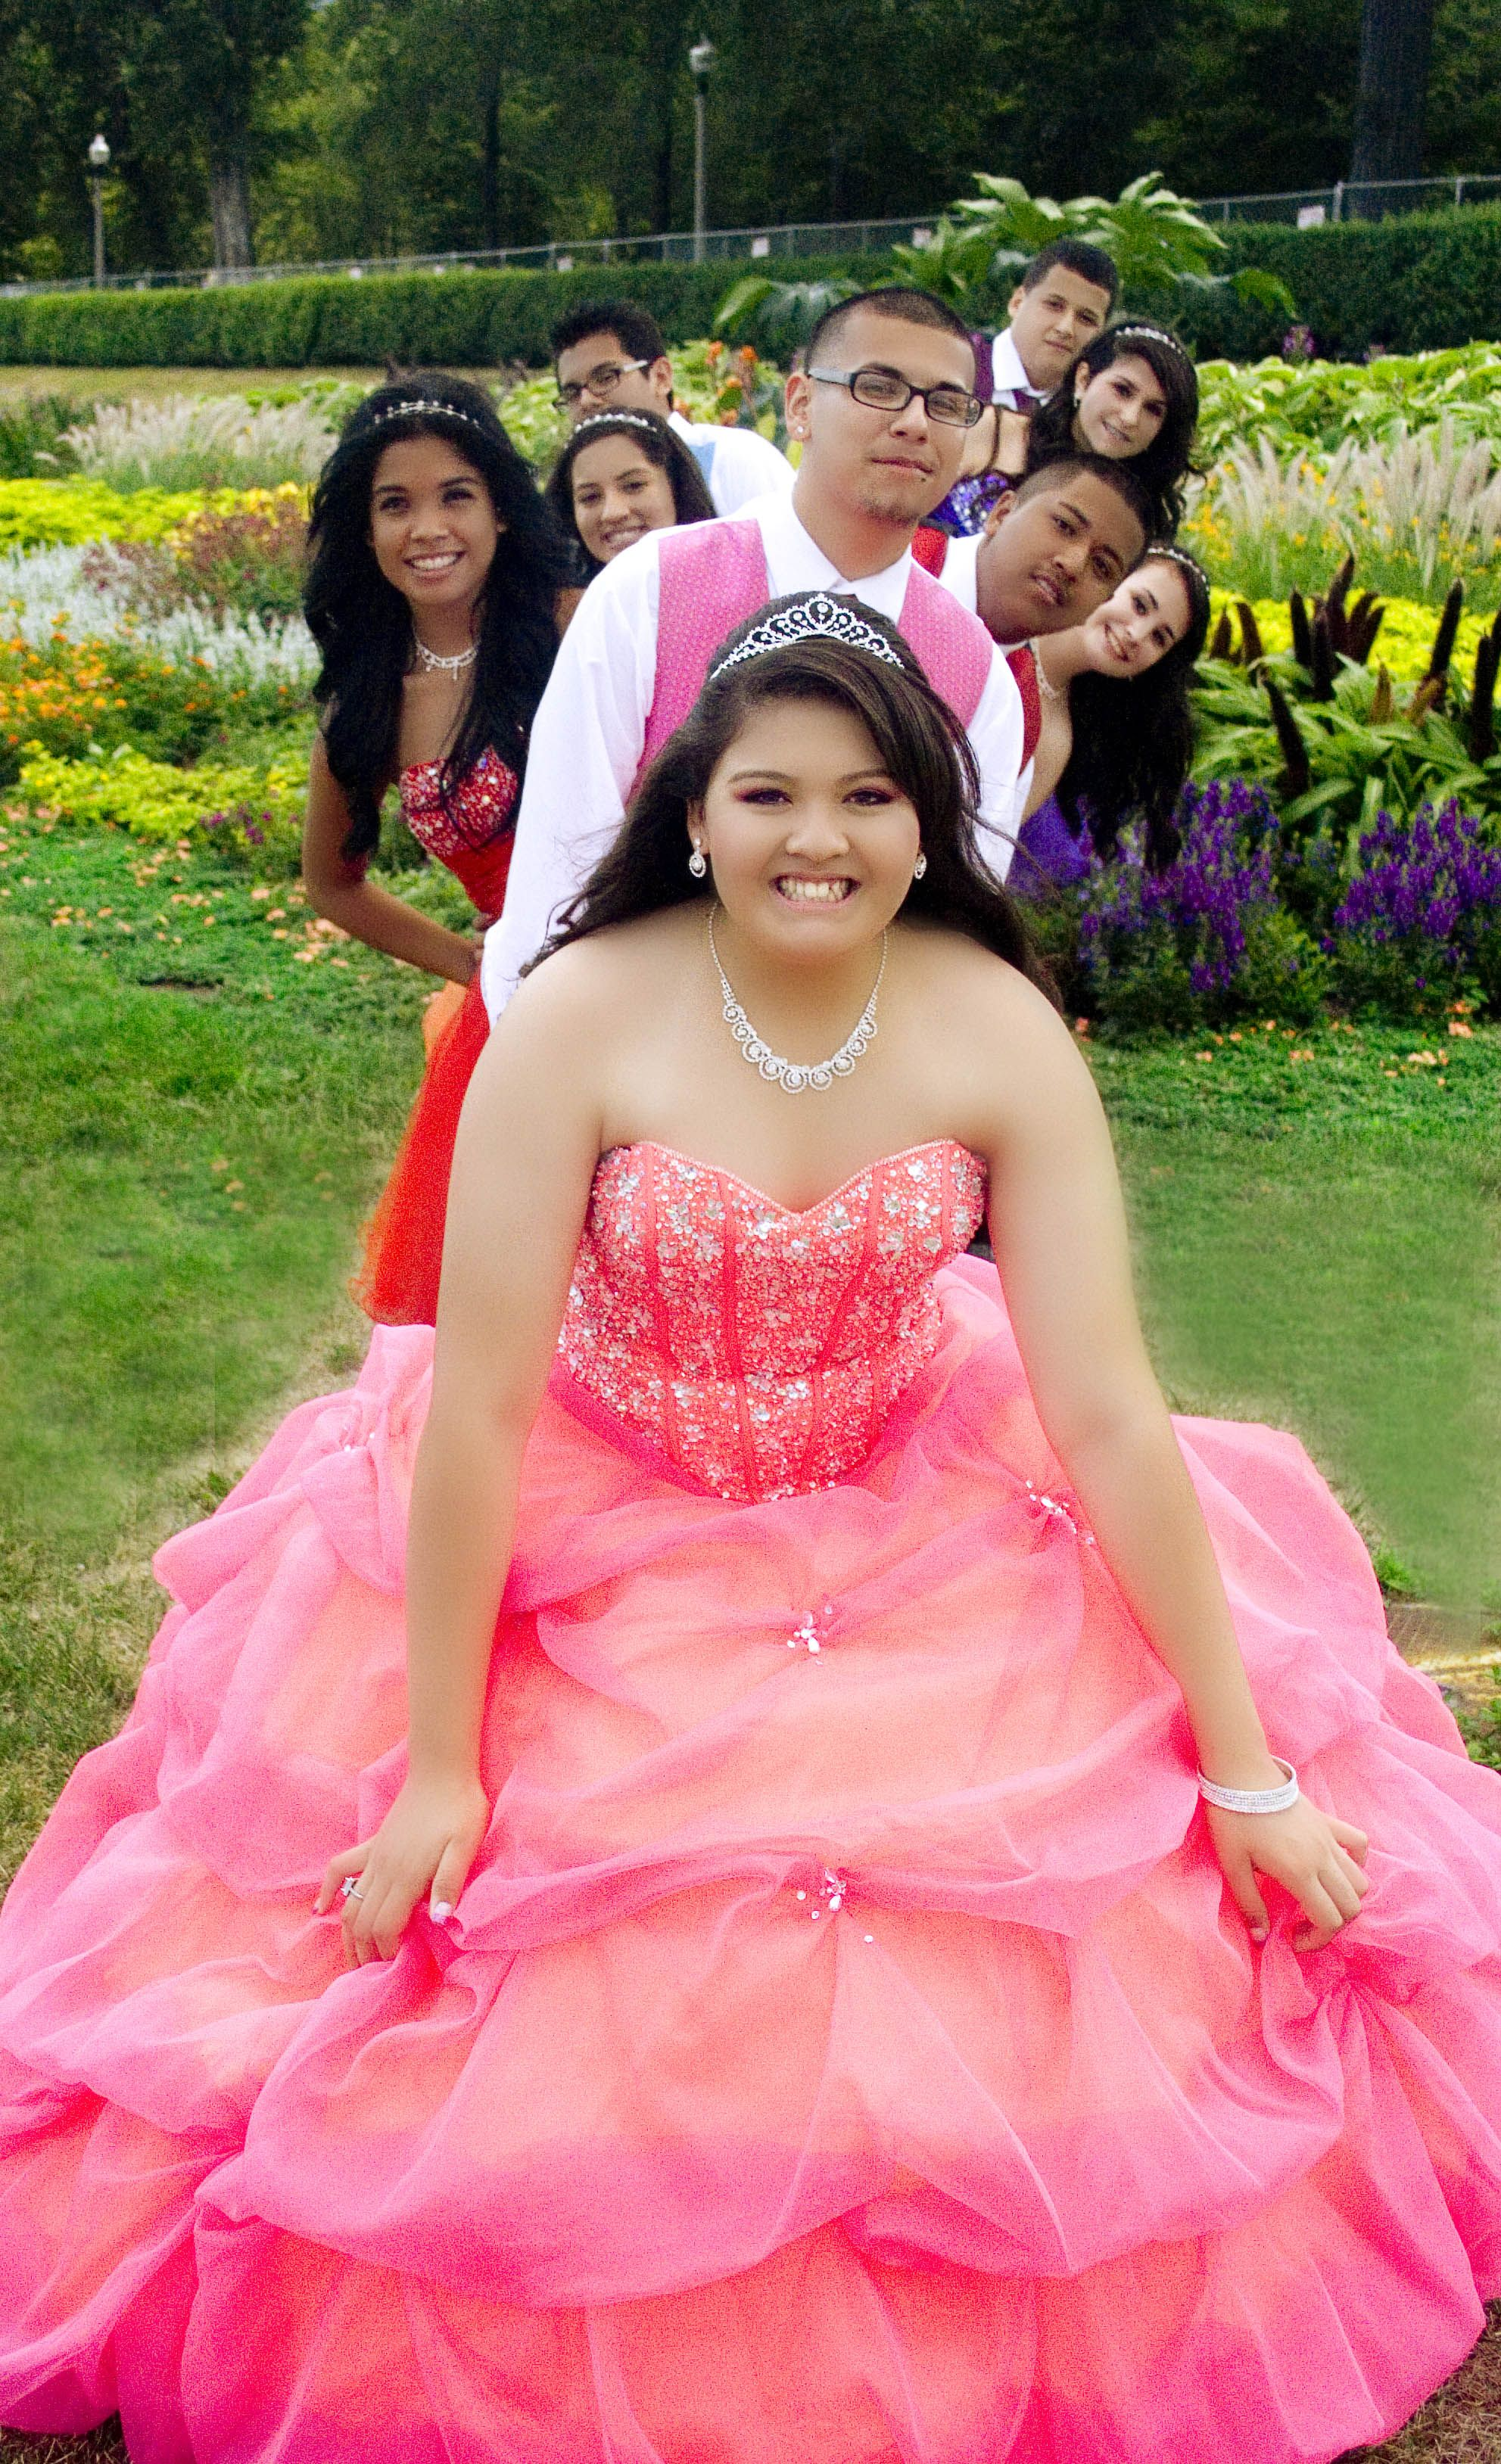 Cute 15 Year Old Girl Images Usseek Com: Cute Pose! A Must Do For Her Quinceanera